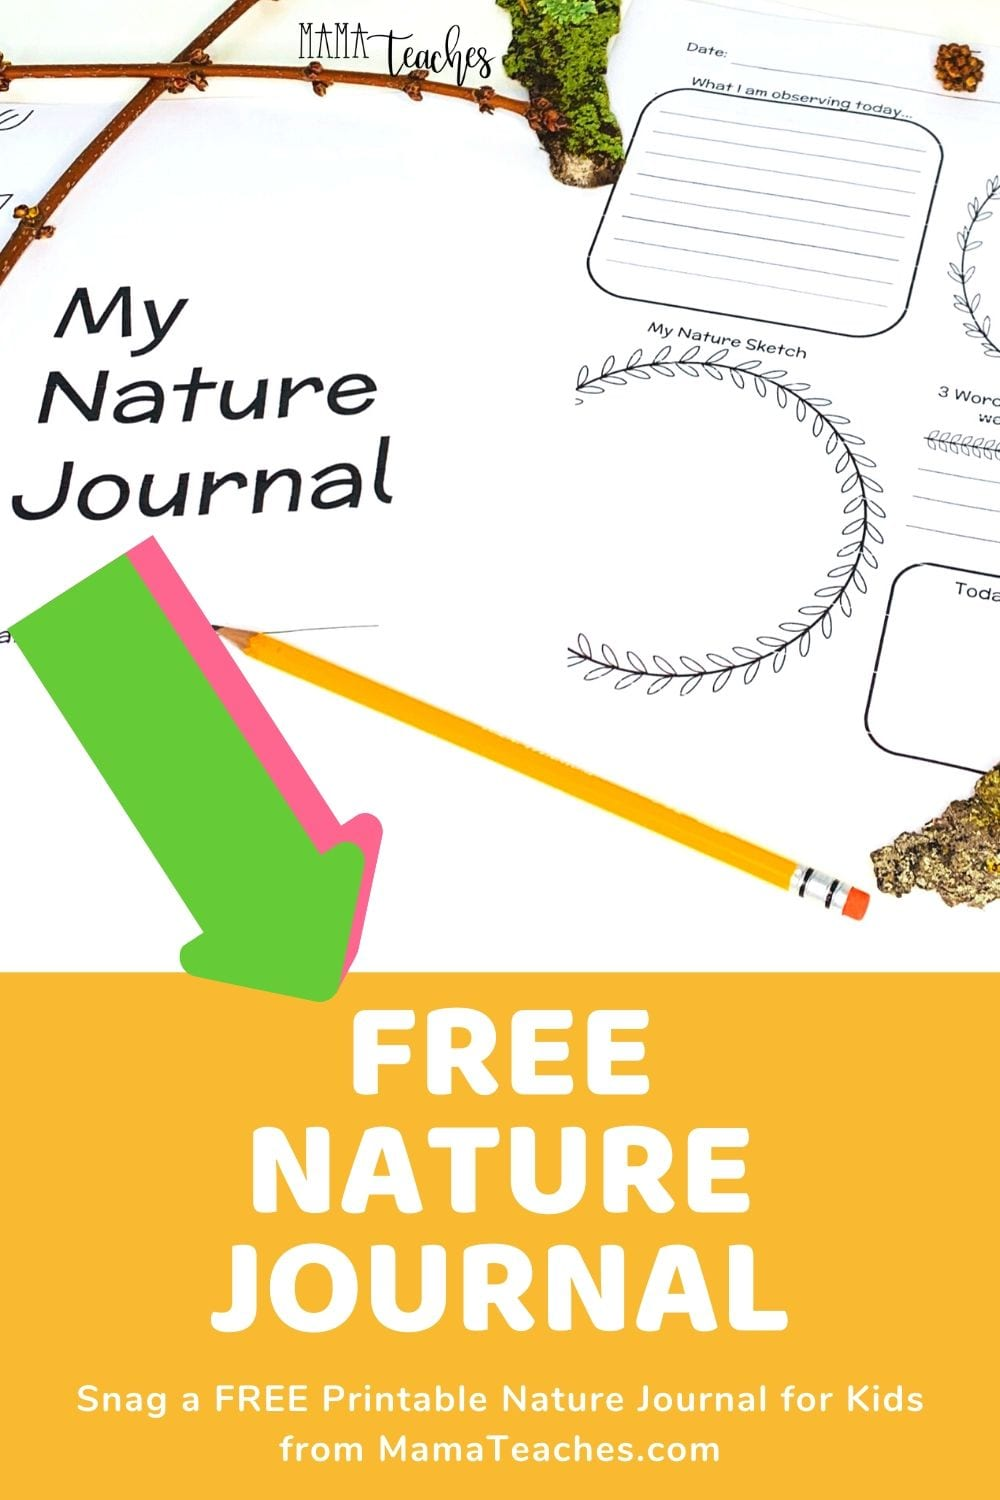 FREE NATURE JOURNAL Printable from MamaTeaches.com